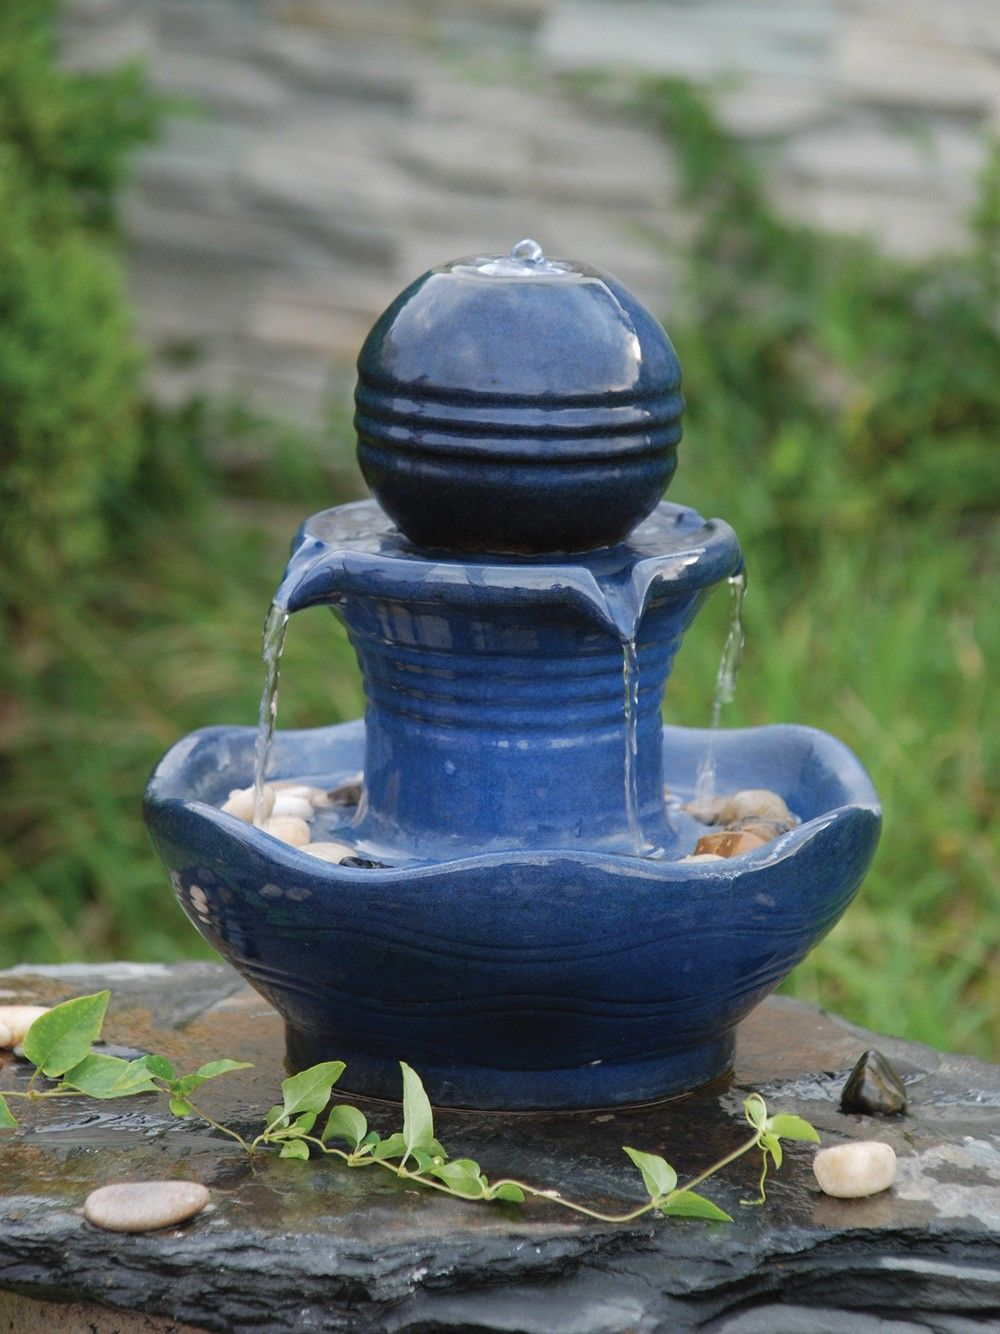 The Imelda Table Top Is A Beautiful Ceramic Fully Self Contained Water  Feature With The